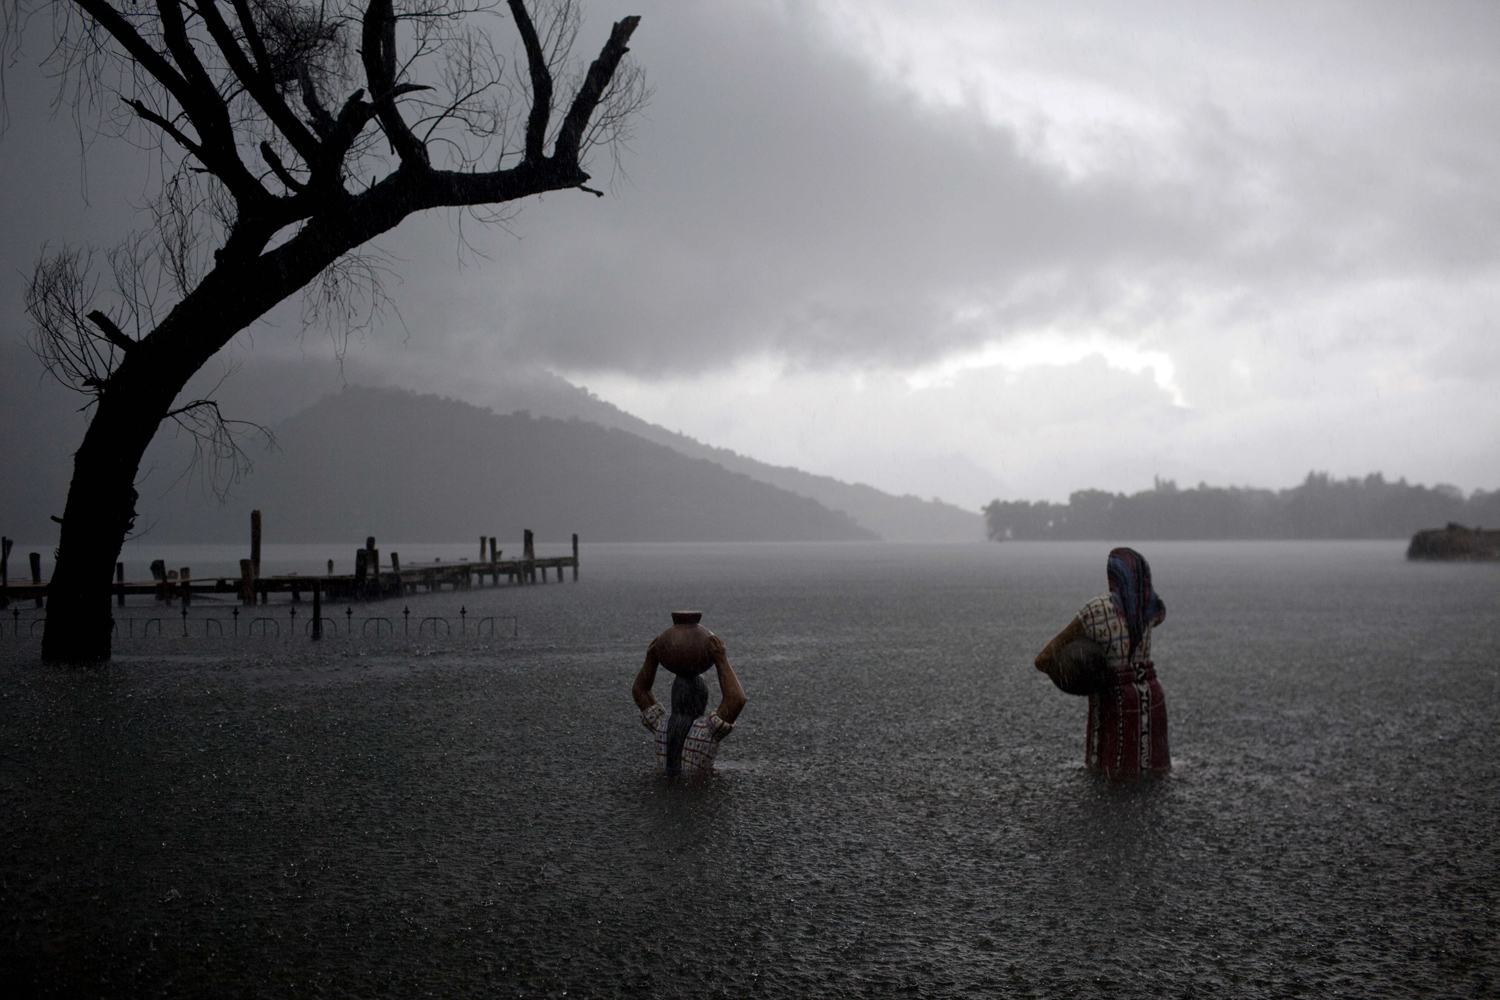 September 9, 2011. Sculptures of Mayan women are partially submerged in floodwaters in Santiago Atitlan, Guatemala. Guatemalans appear poised to elect former general Otto Perez Molina of the Patriotic Party as president in this week's election.